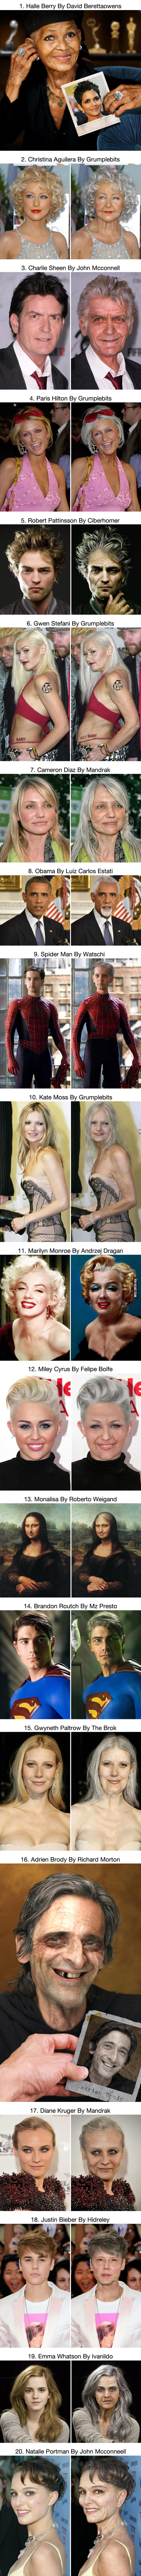 Photoshop Masters Show How Celebrities Might Look When They Get Old